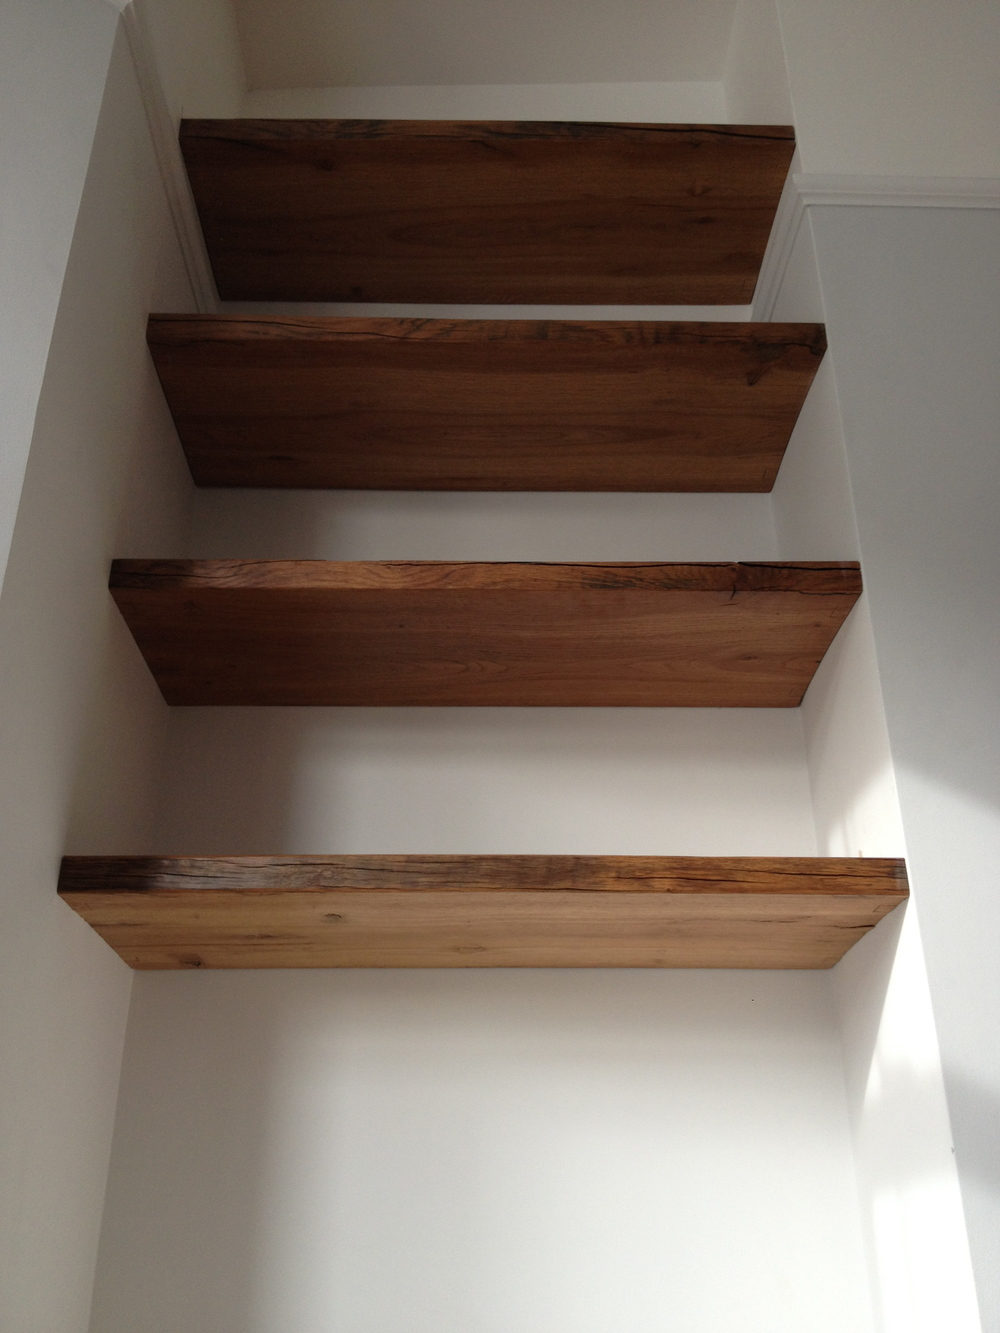 Solid oak reclaimed shelves